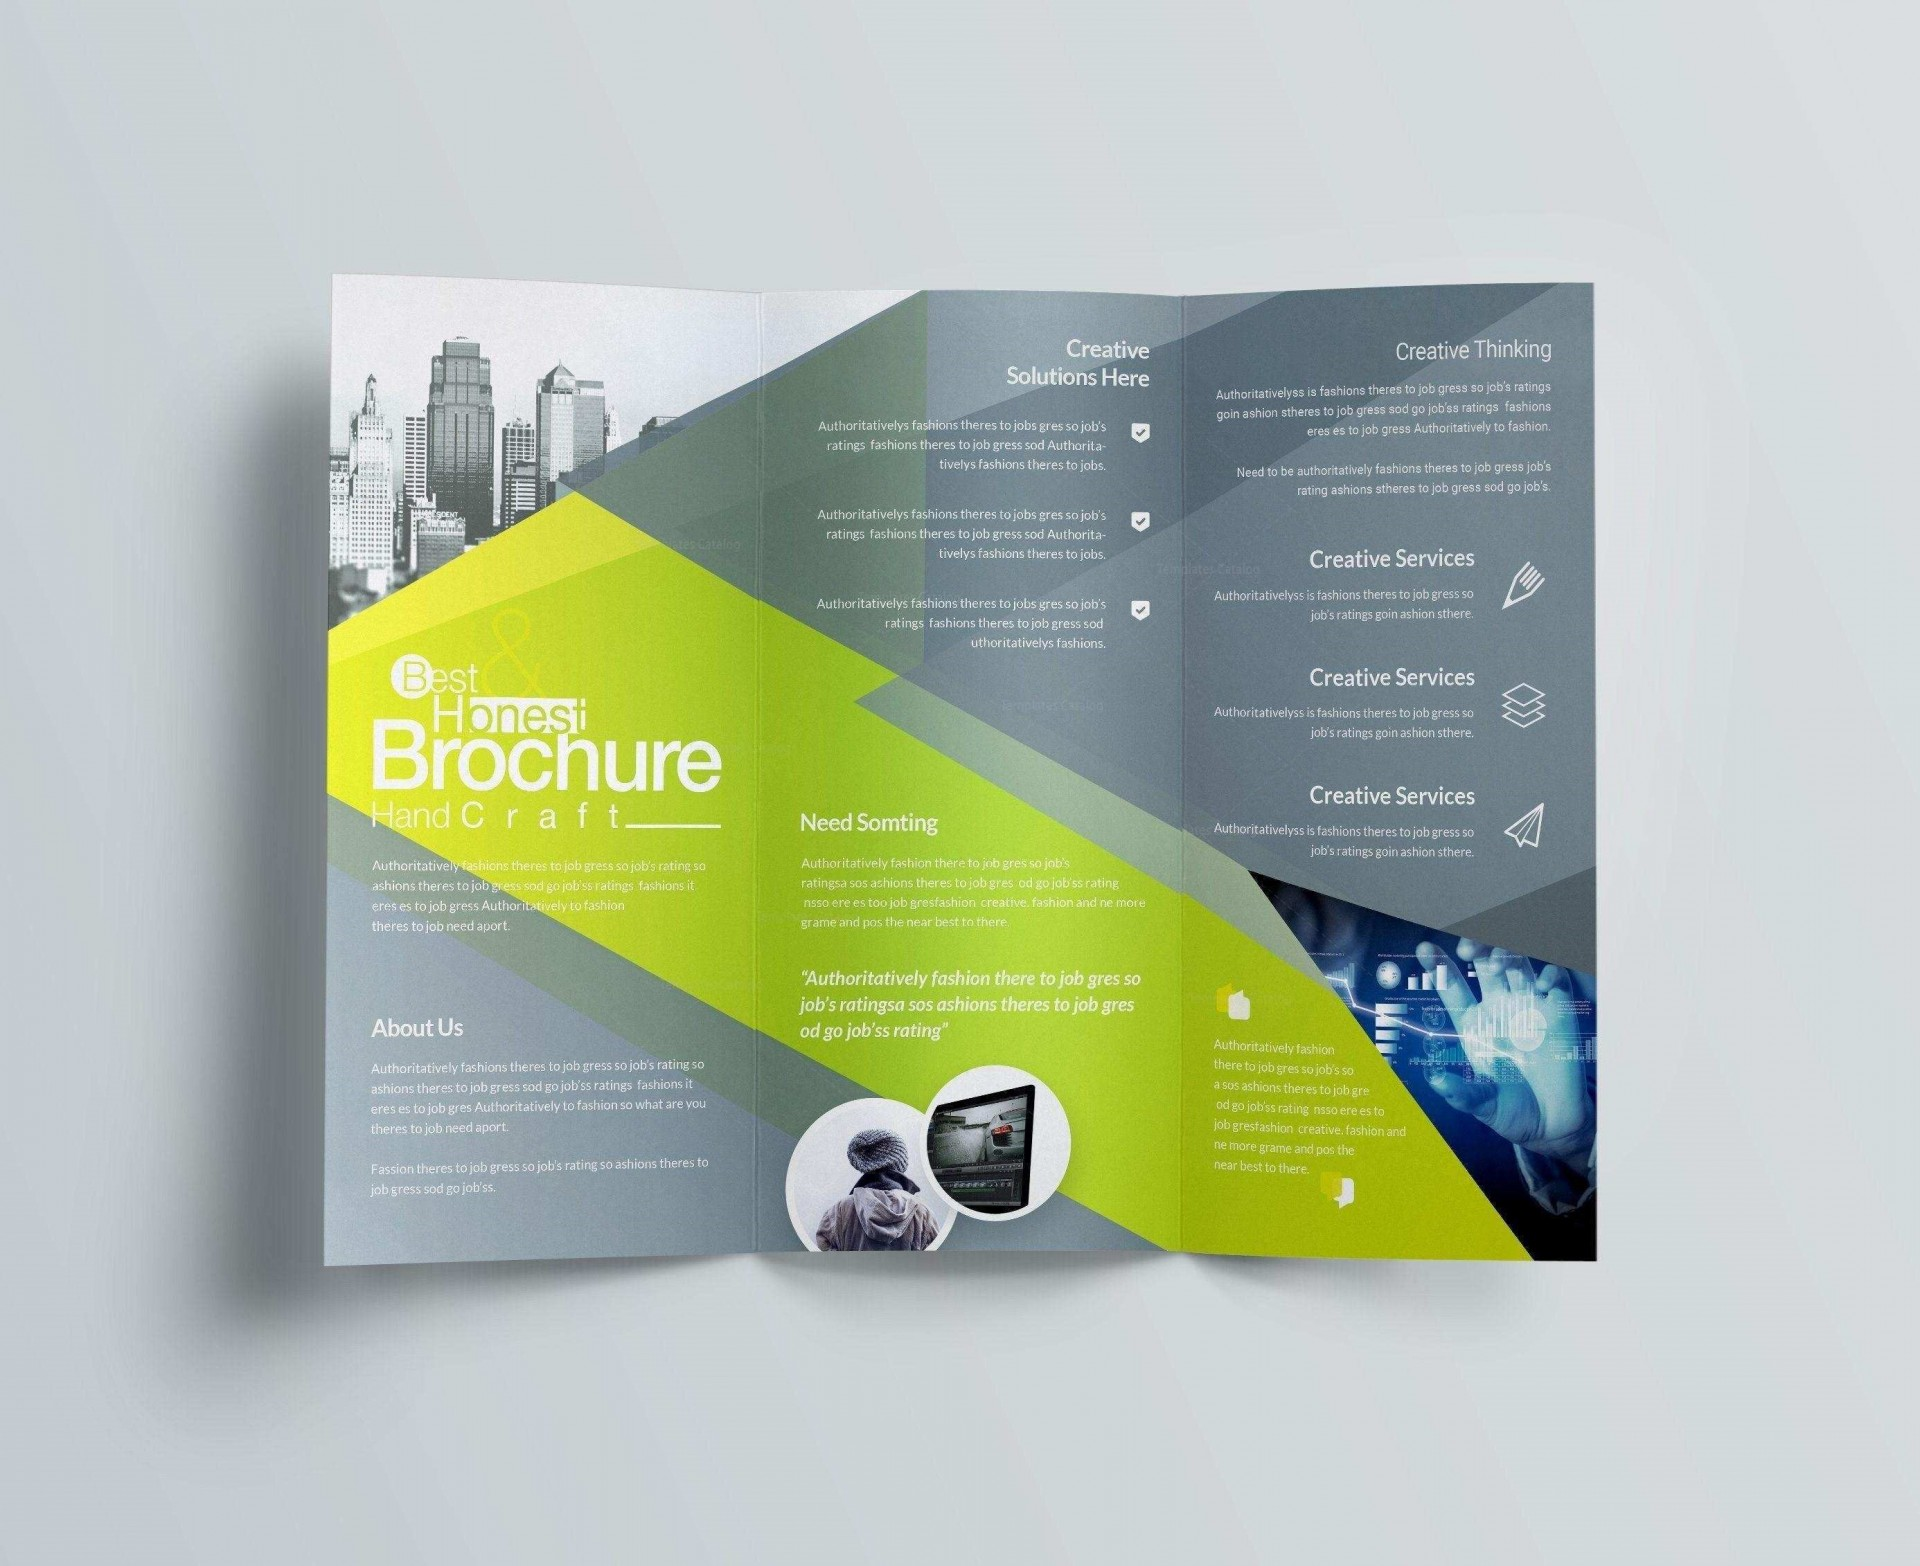 000 Best Publisher Brochure Template Free High Def  Tri Fold Microsoft Download Bi1920